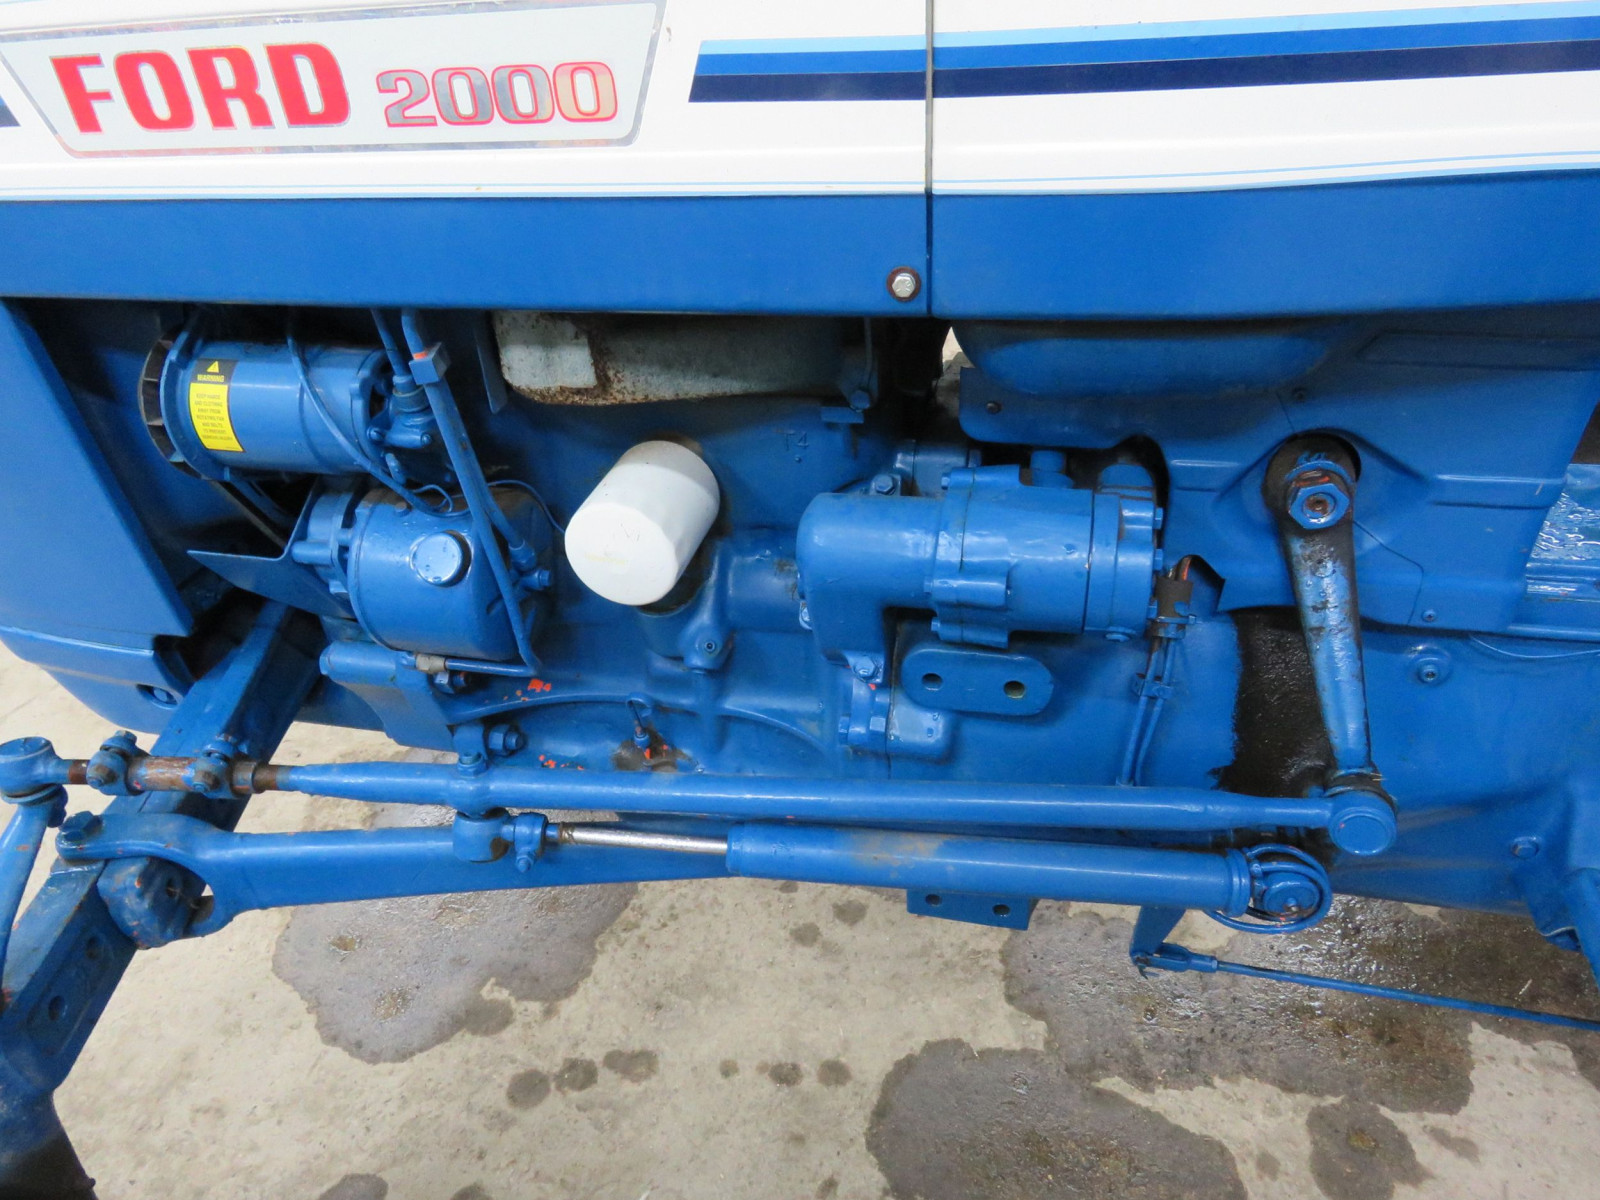 1972 Ford 2000 Tractor - Image 7